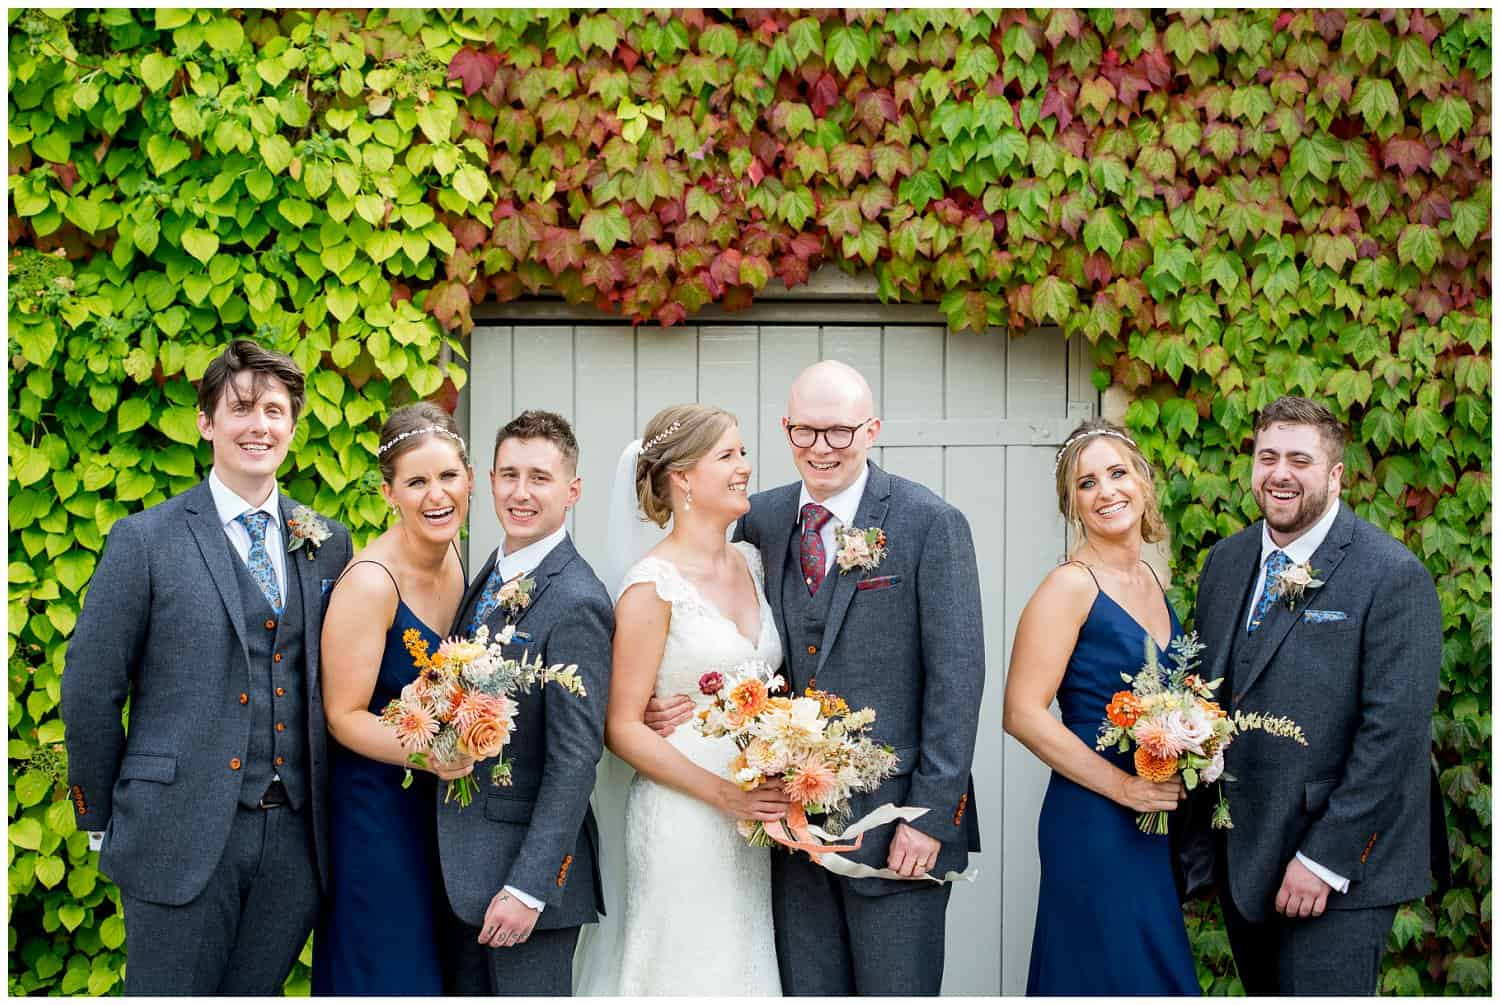 The wedding of Katy & Rich. Photographed by Rebecca Roundhill. Great Barn Devon weddings